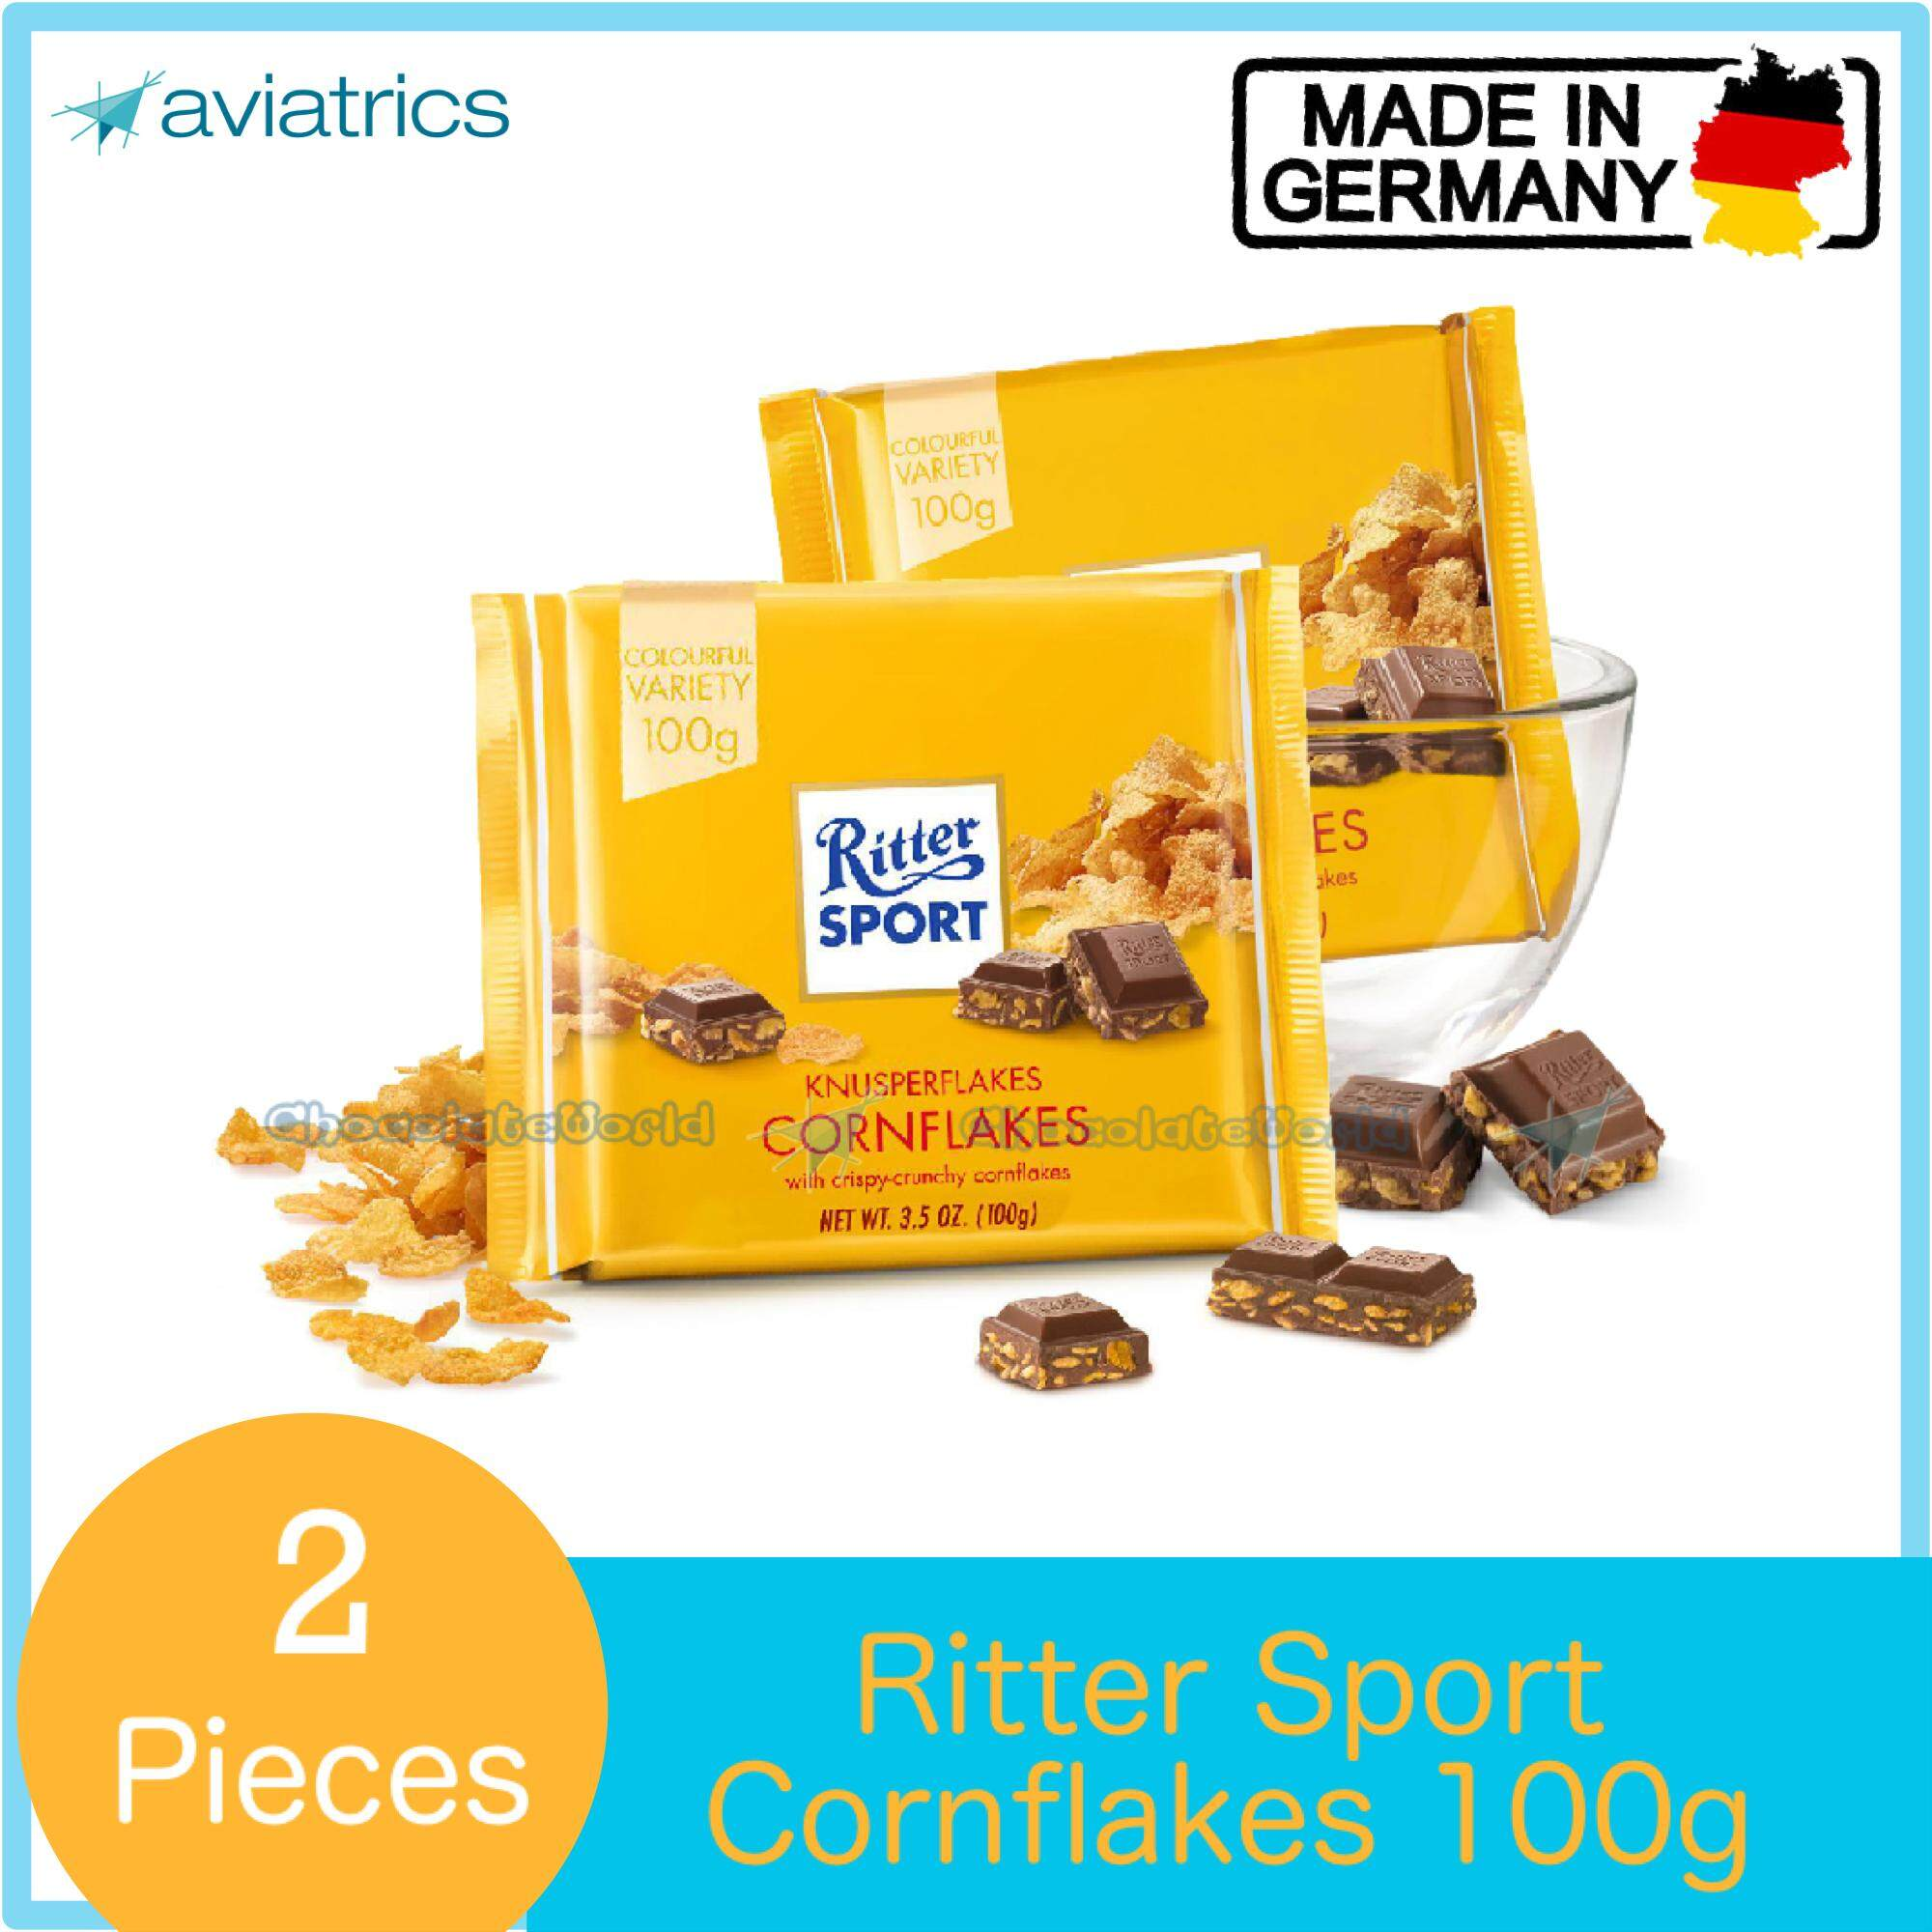 Ritter Sport Cornflakes 100g X 2 (Made in Germany)